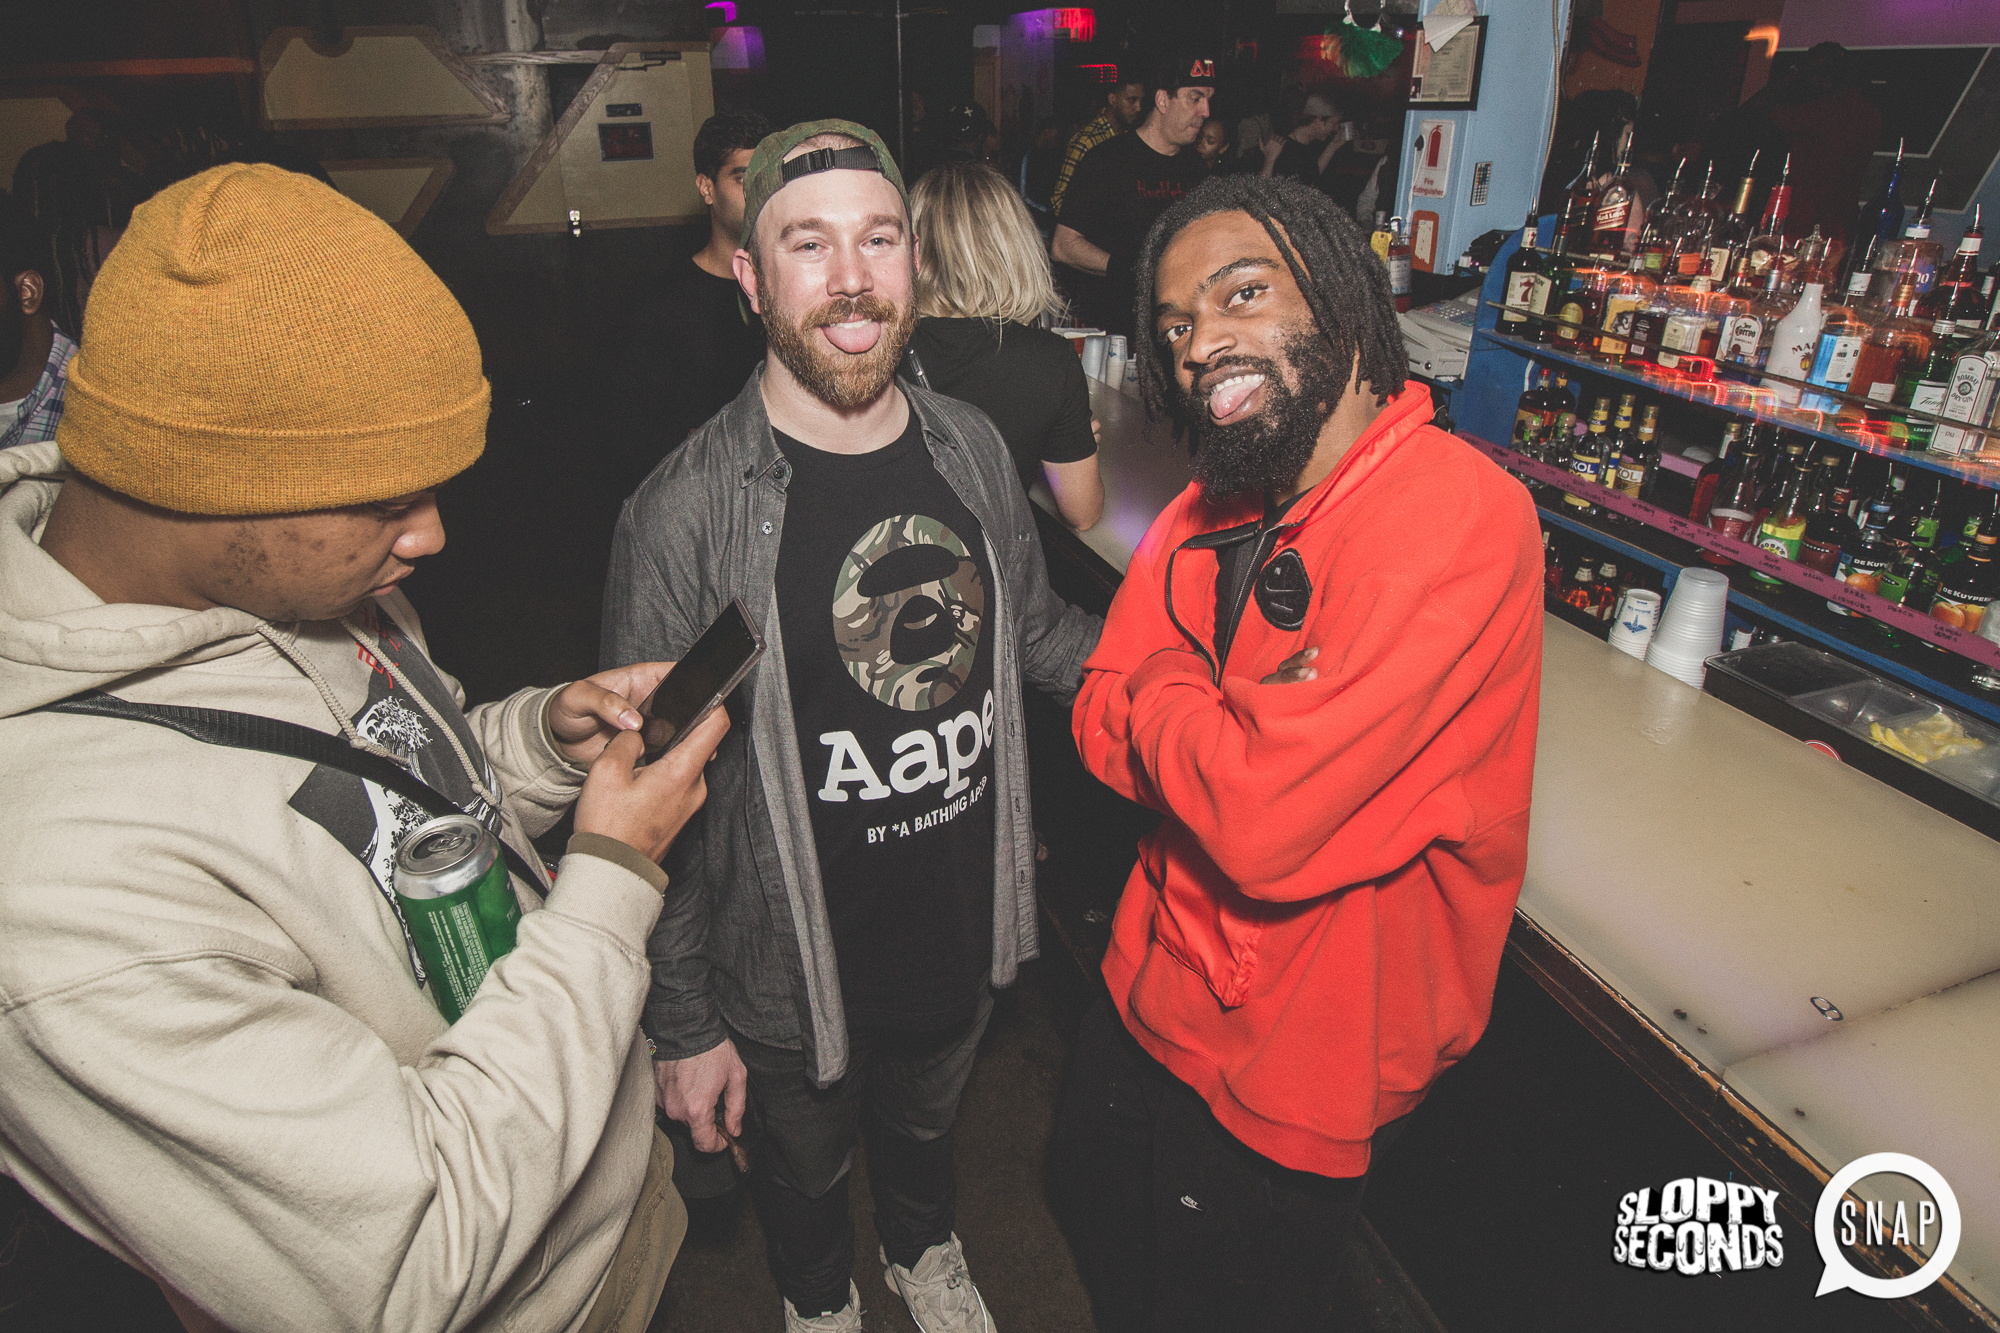 31Sloppy Seconds March2019 oh snap kid atlanta4.JPG